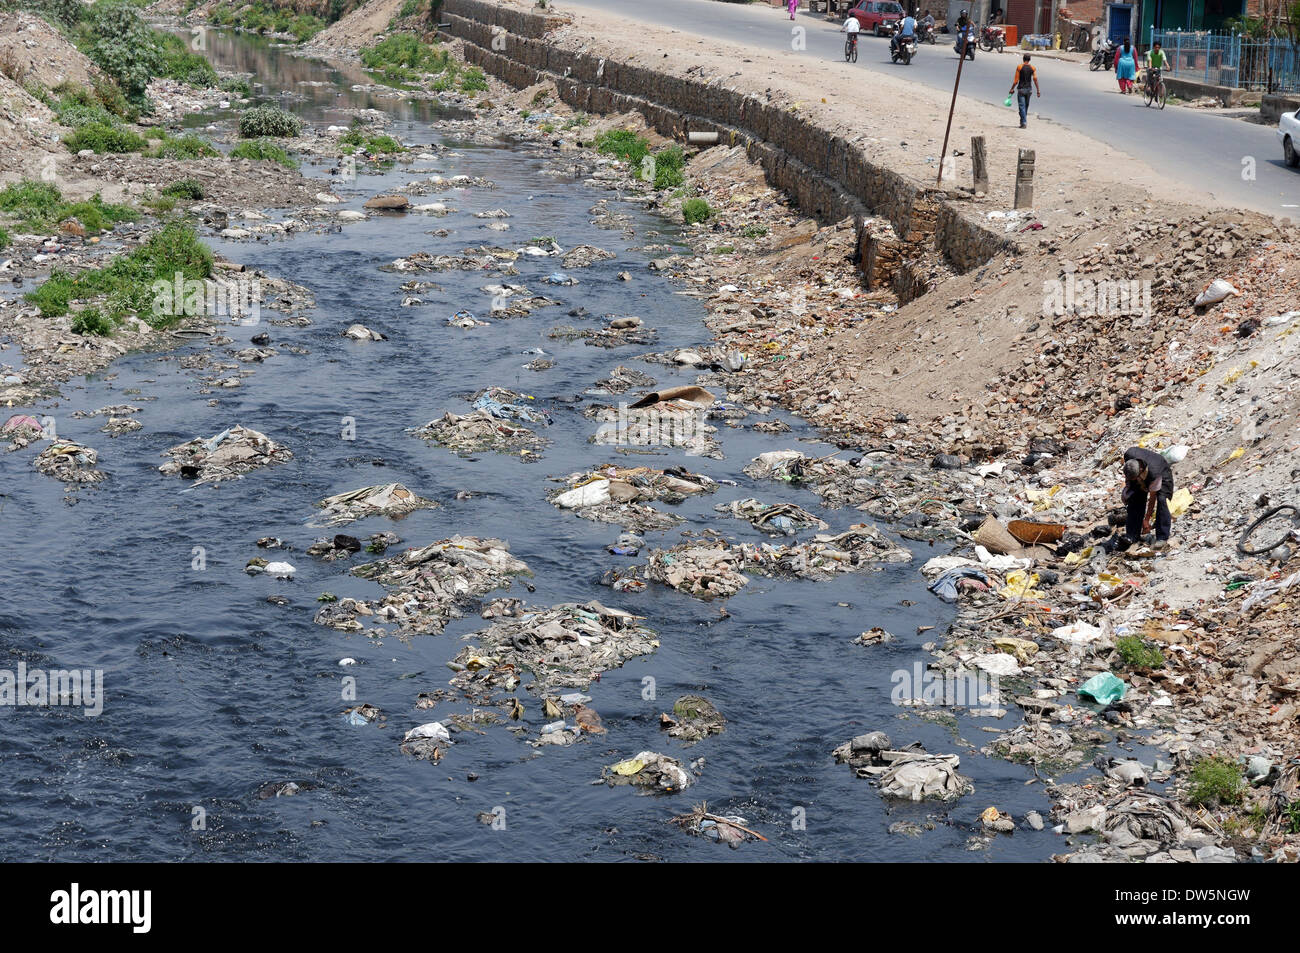 The appalling pollution in the Bagmati River in Kathmandu, Nepal - Stock Image